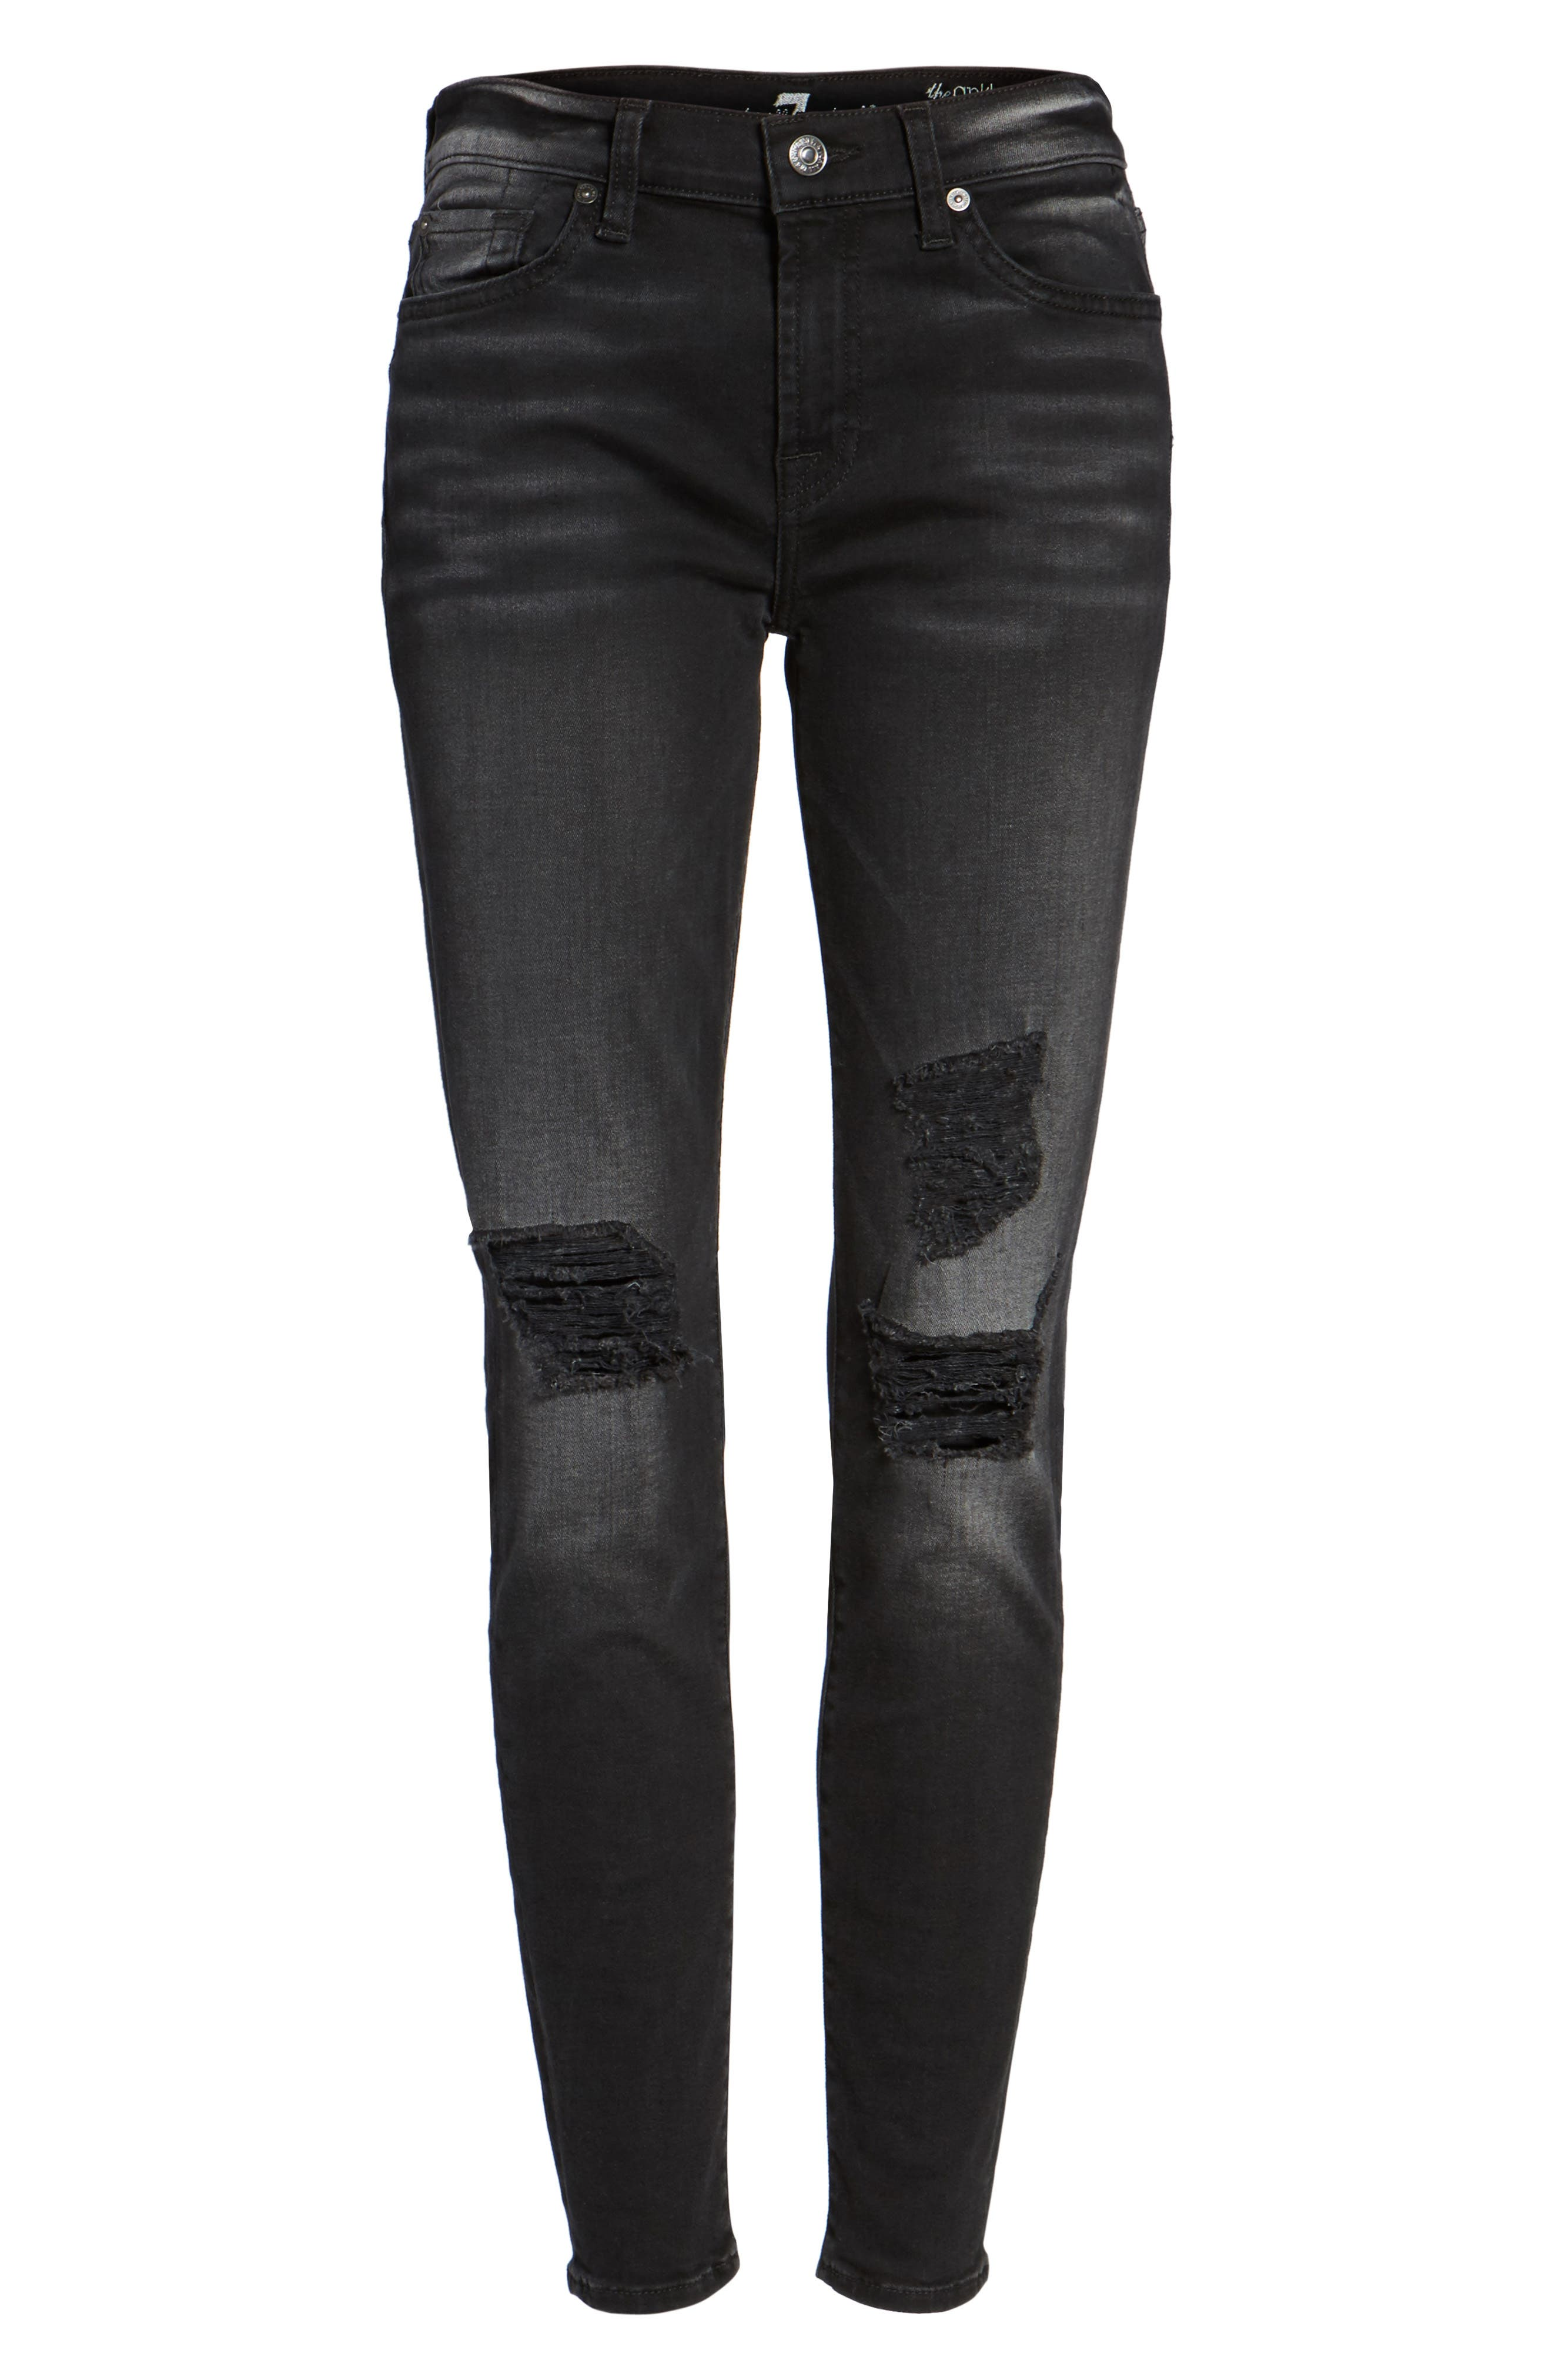 Seven7 The Ankle Skinny Jeans,                             Alternate thumbnail 6, color,                             004